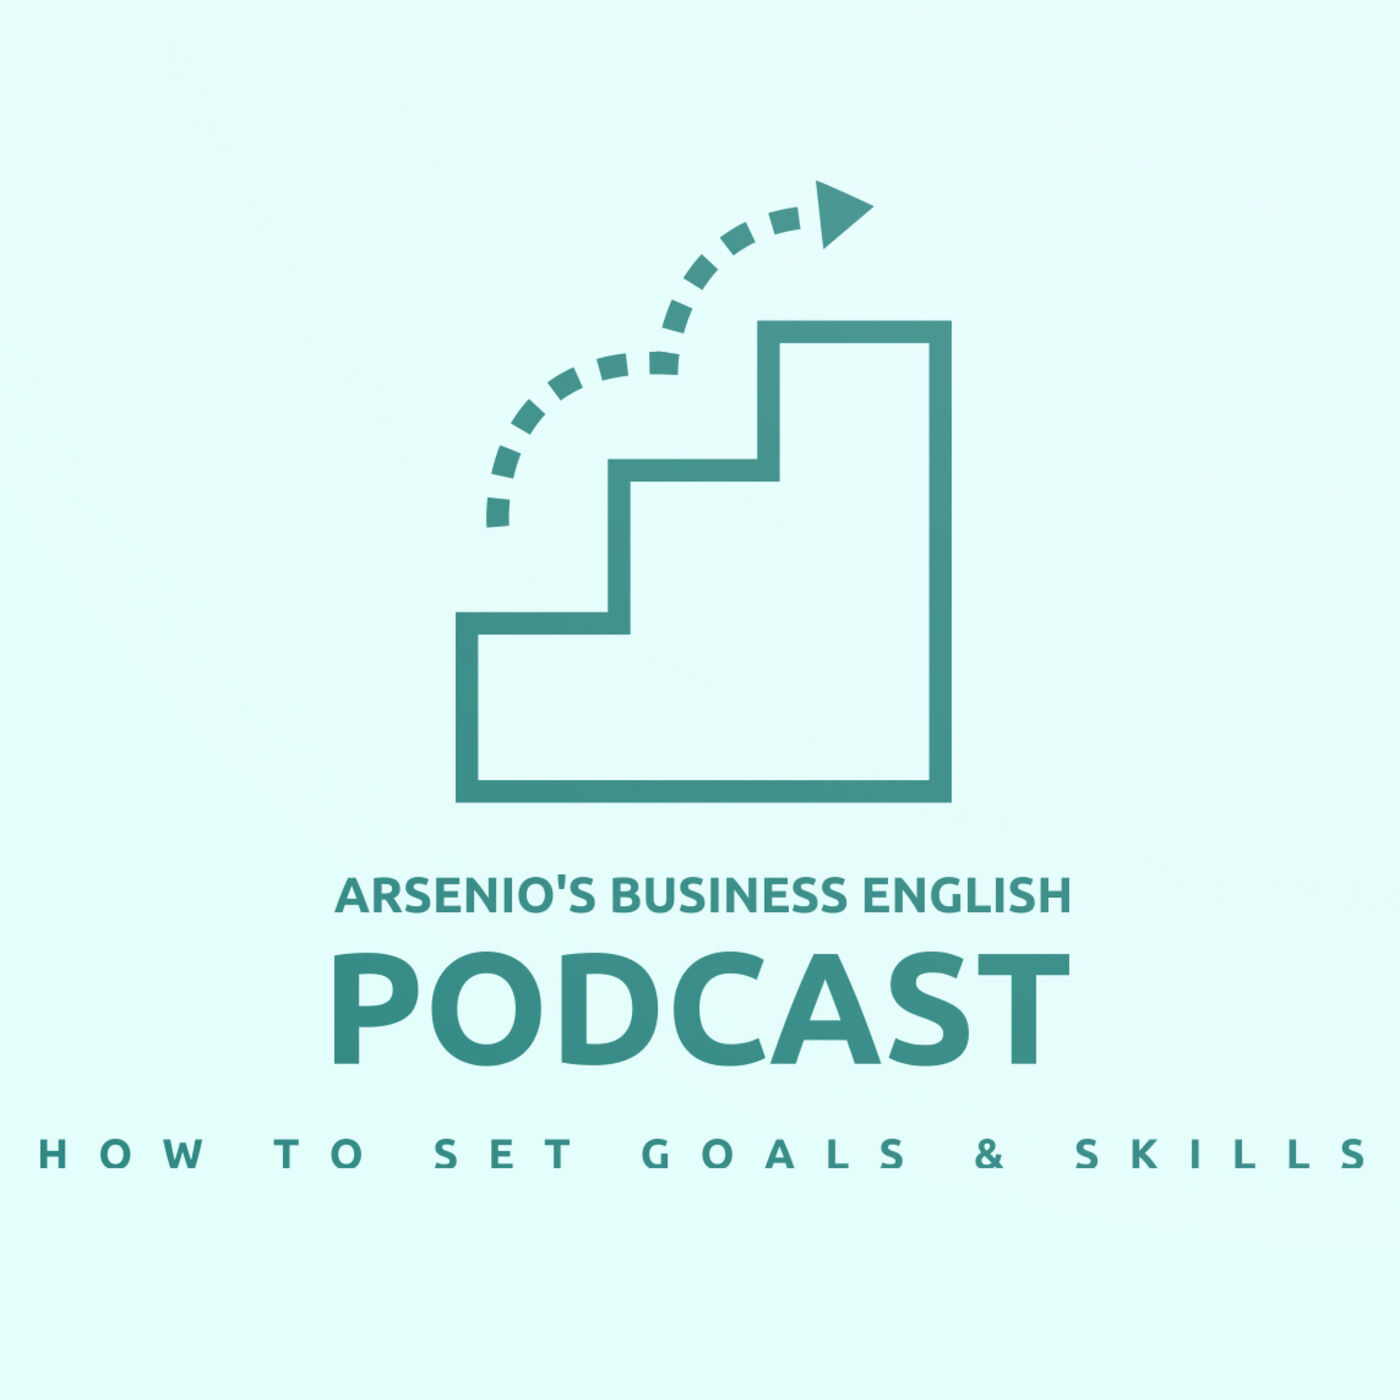 Arsenio's Business English Podcast | Season 6: Episode 13 | How to Set Goals & Skills for 2021